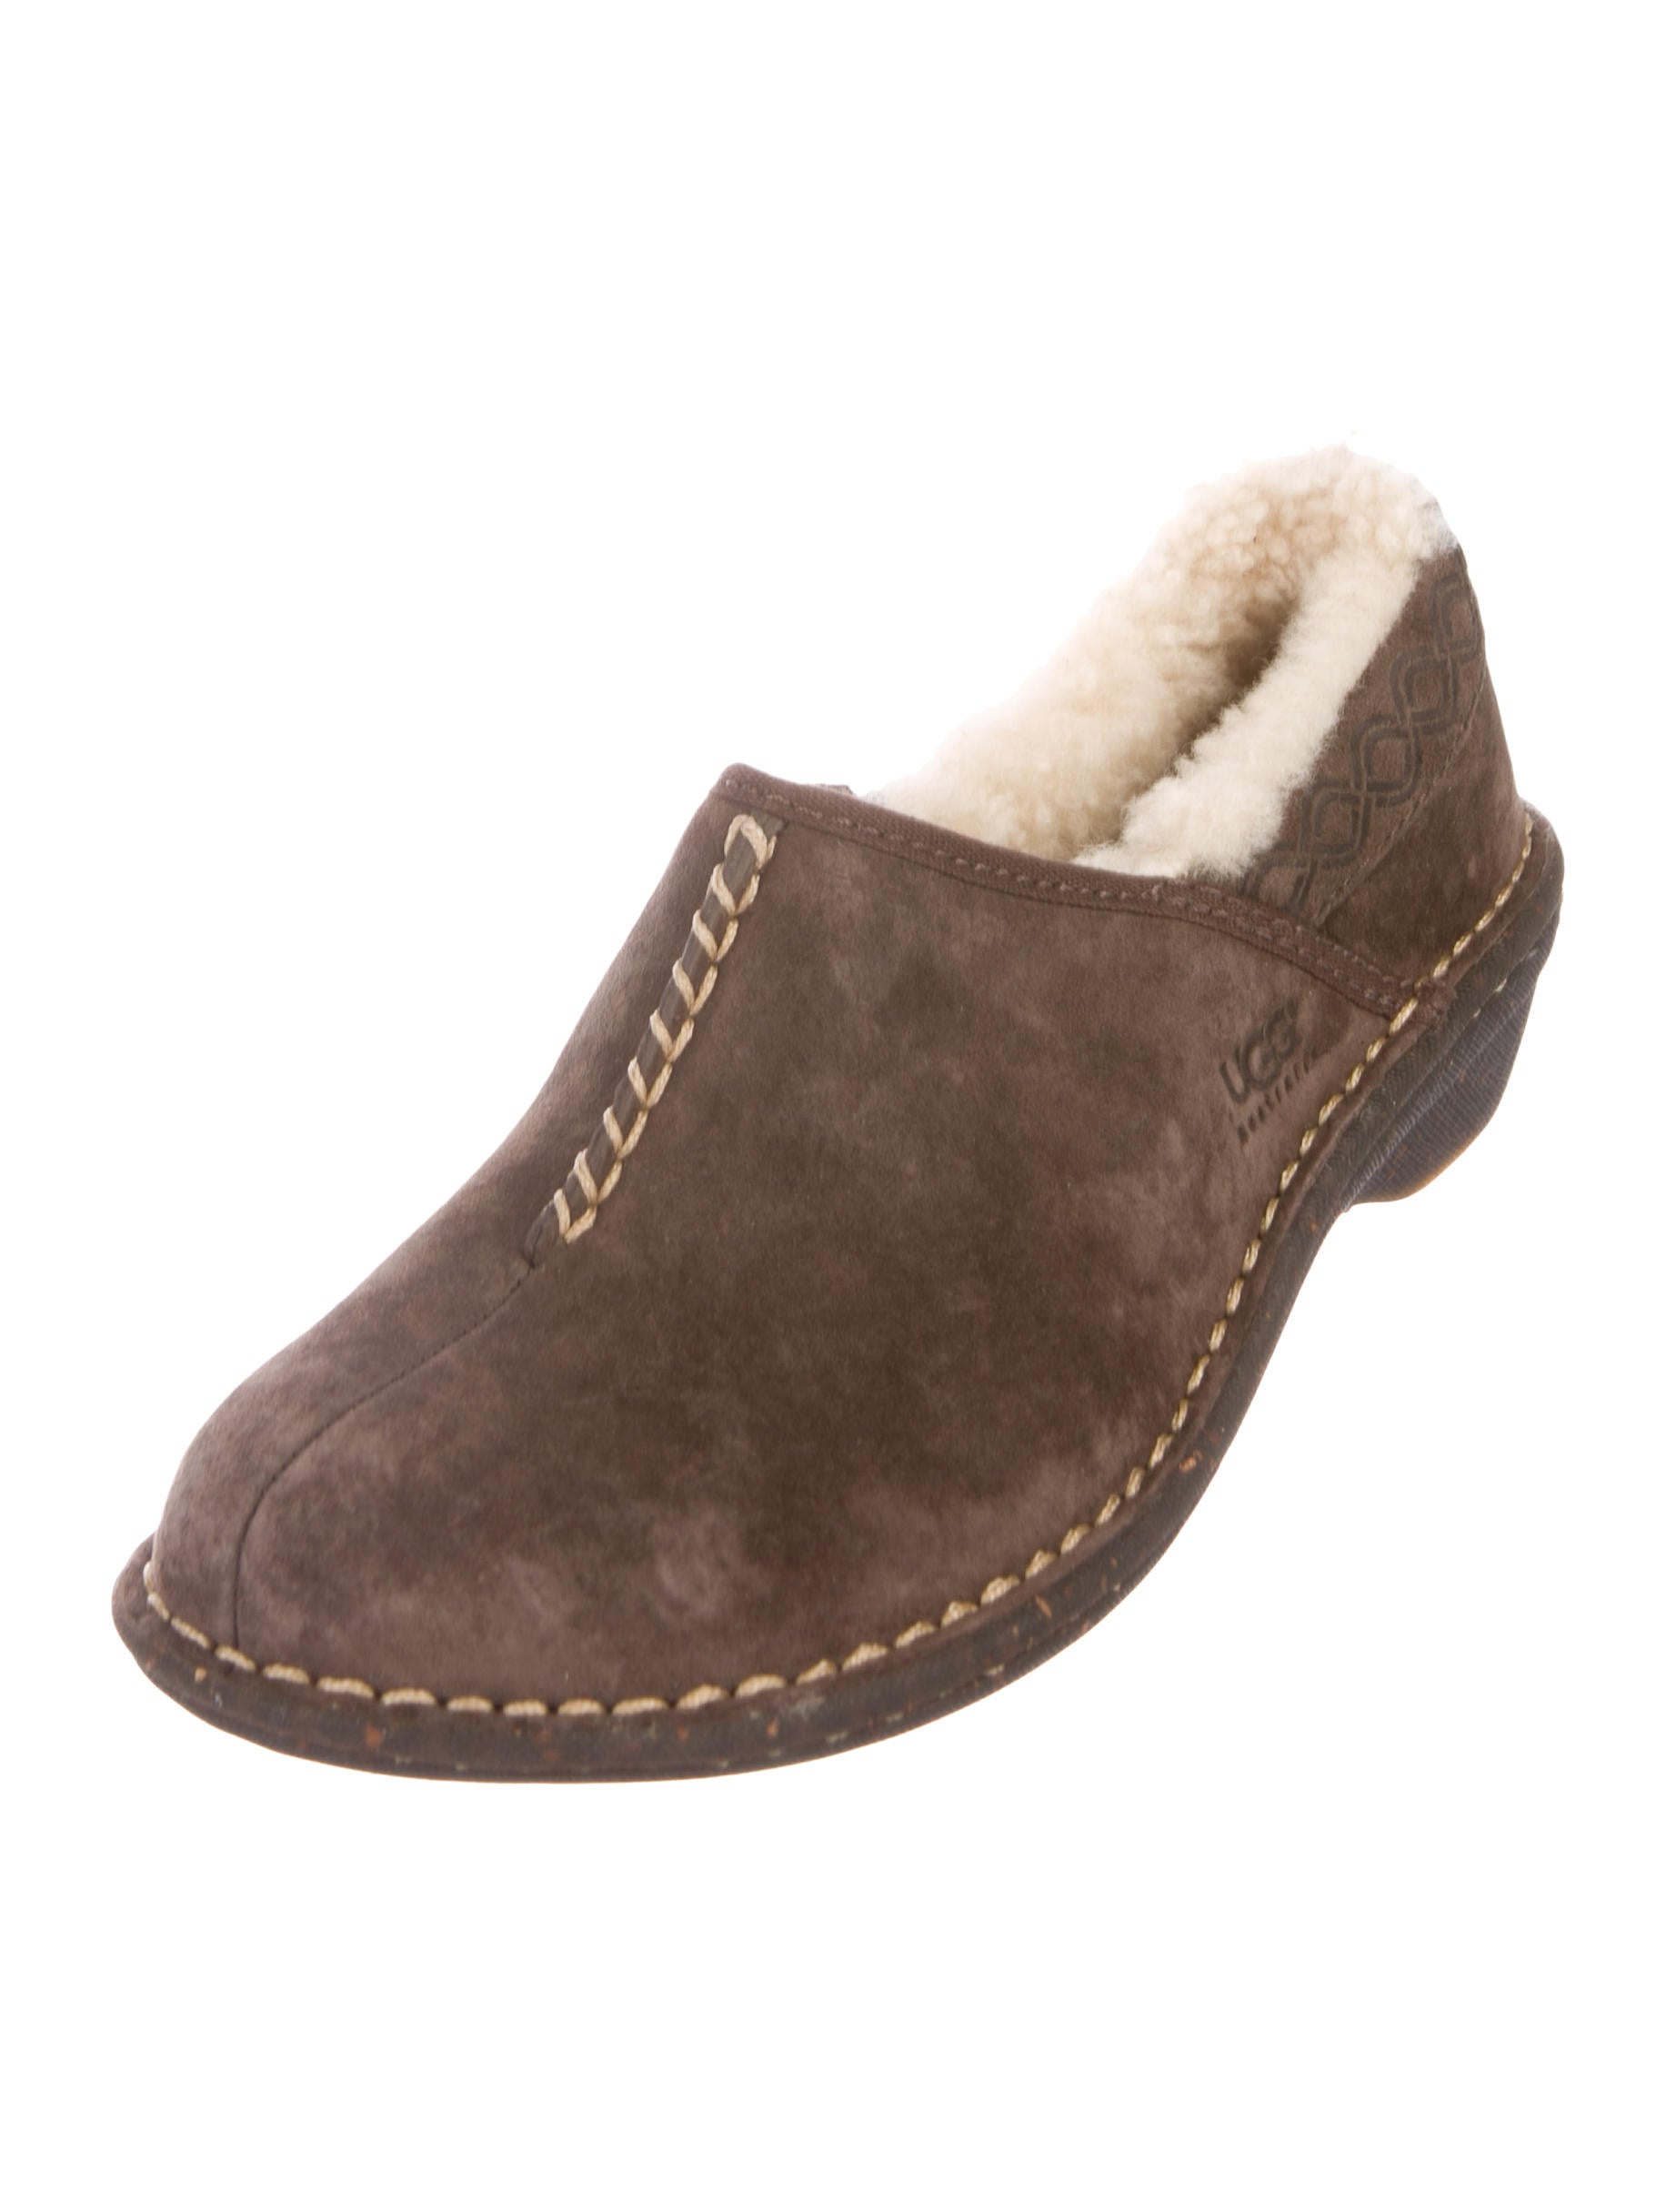 100% original online cheap choice UGG Australia Bettey Shearling Booties buy cheap deals outlet best sale low price cheap online H1wcS